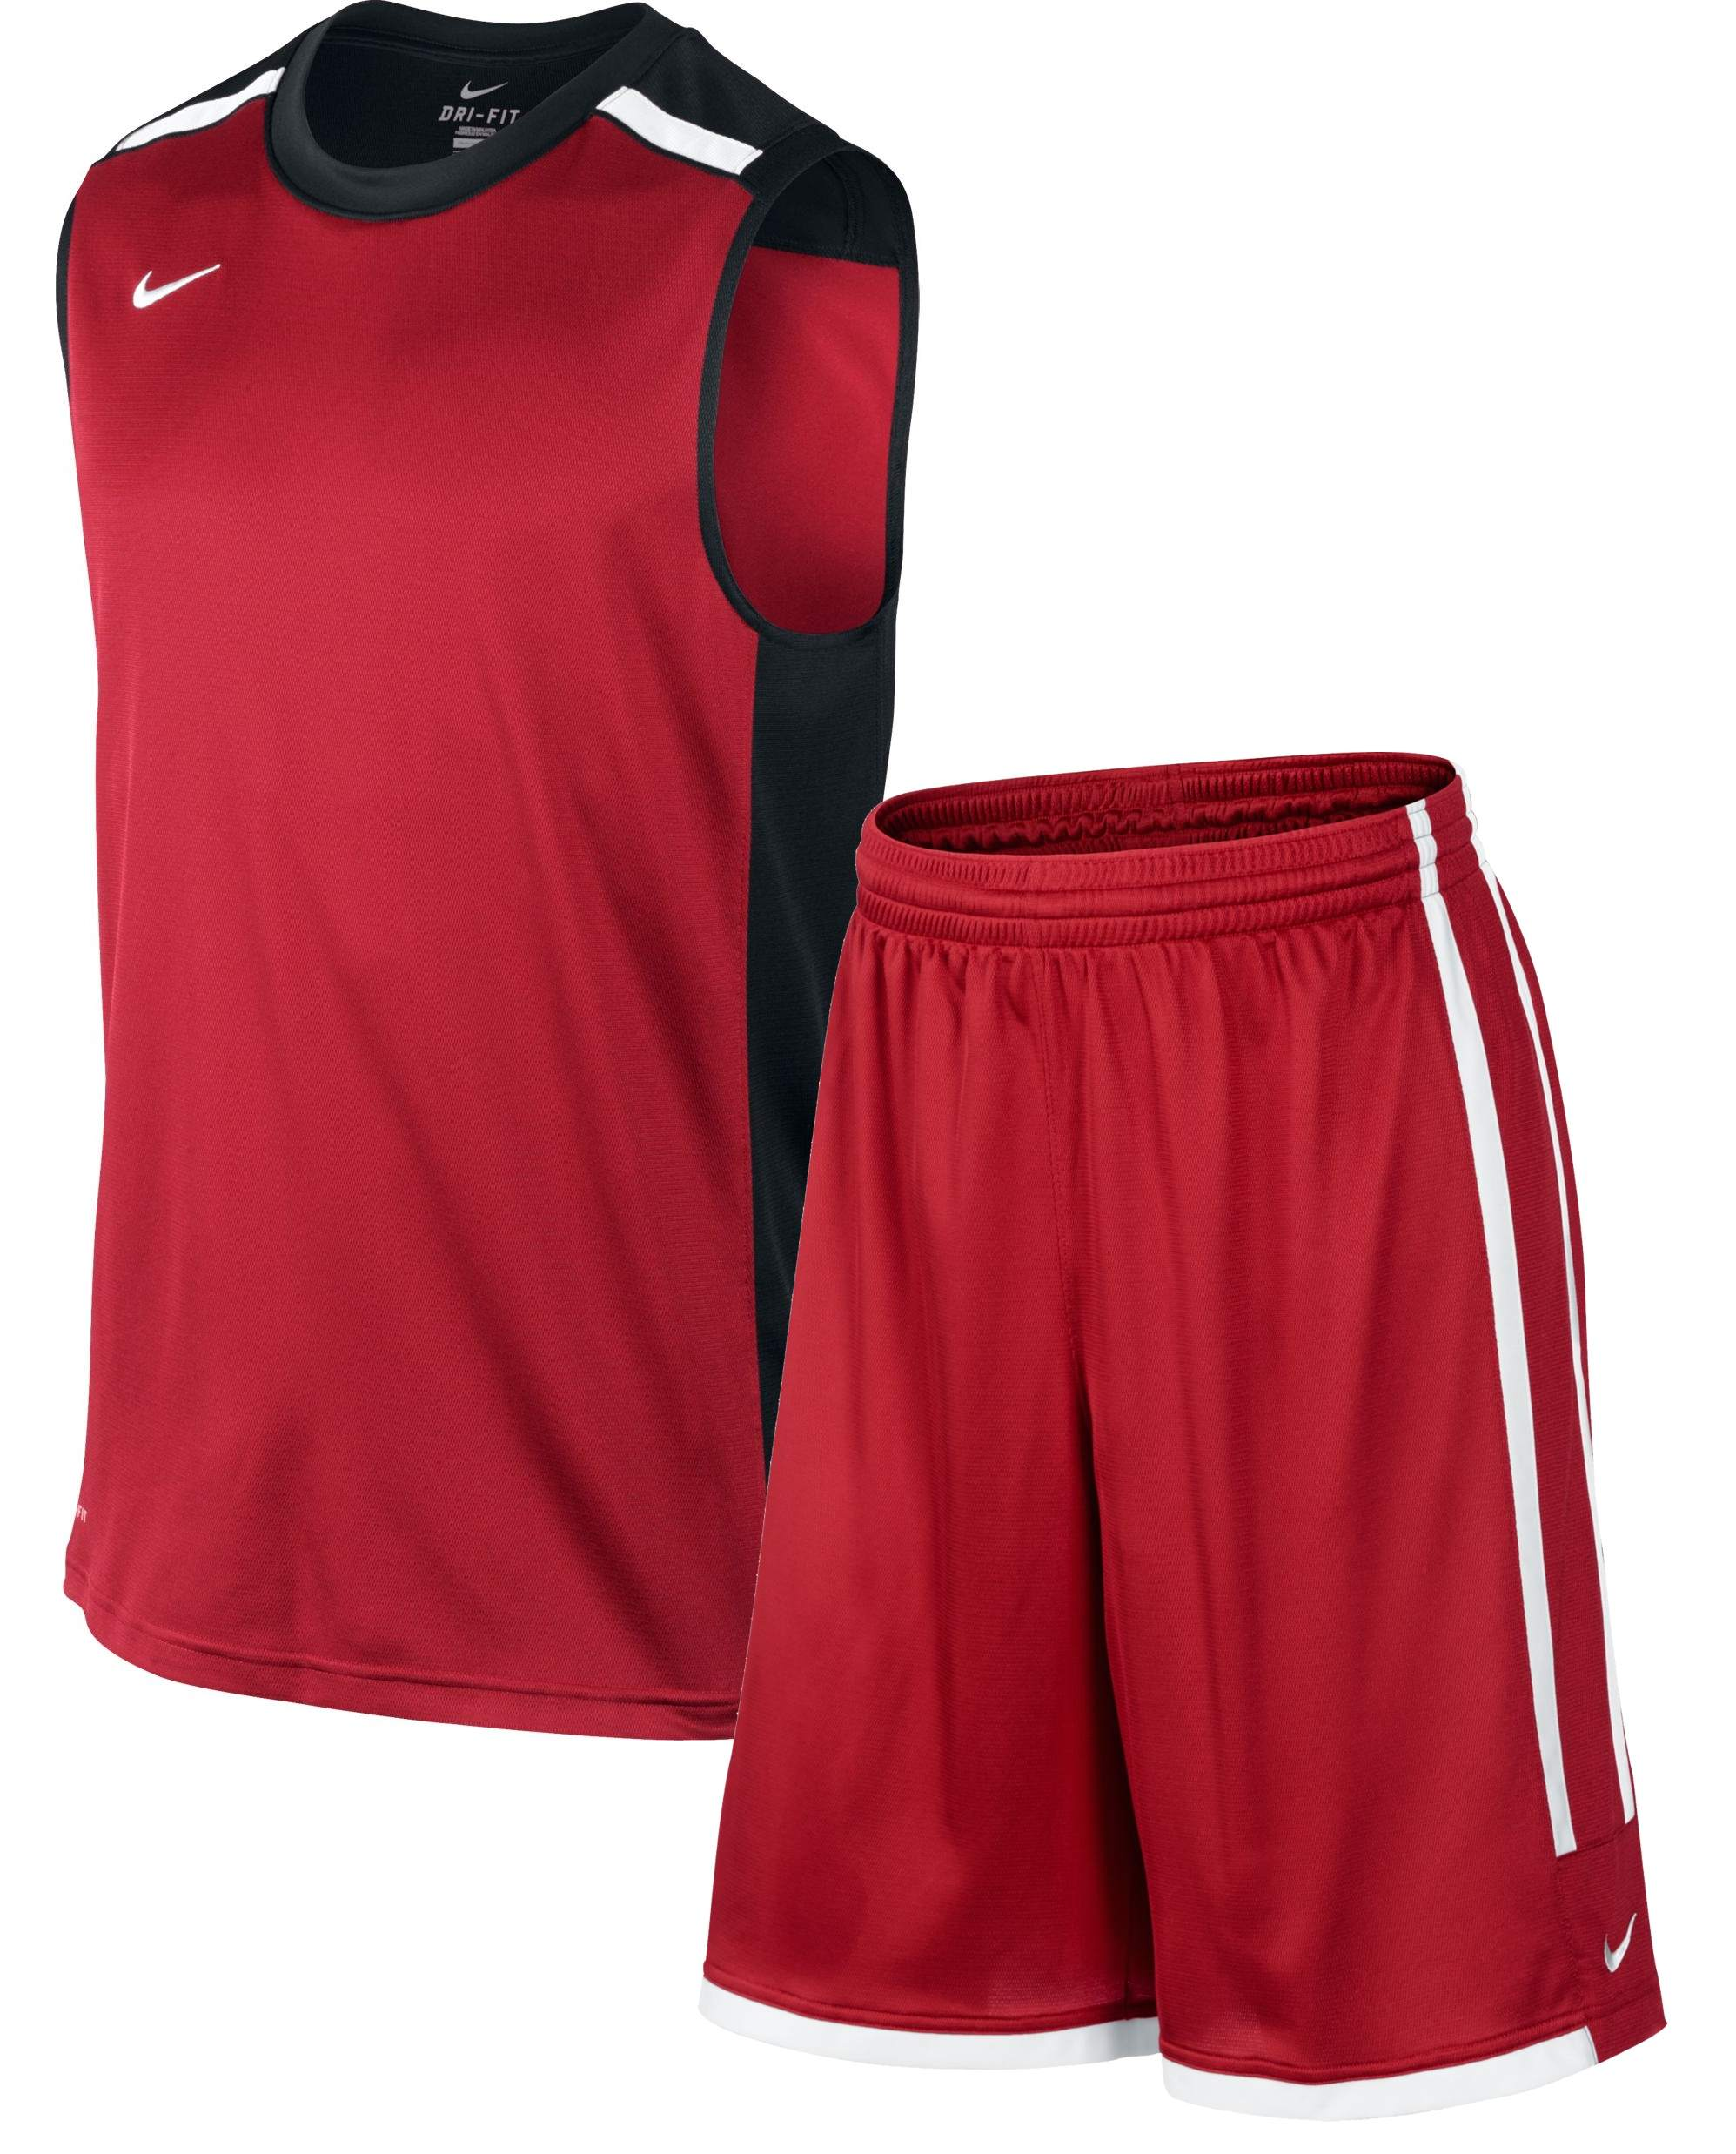 Nike Team League Basketball Kit NK-521130-657-528308-657